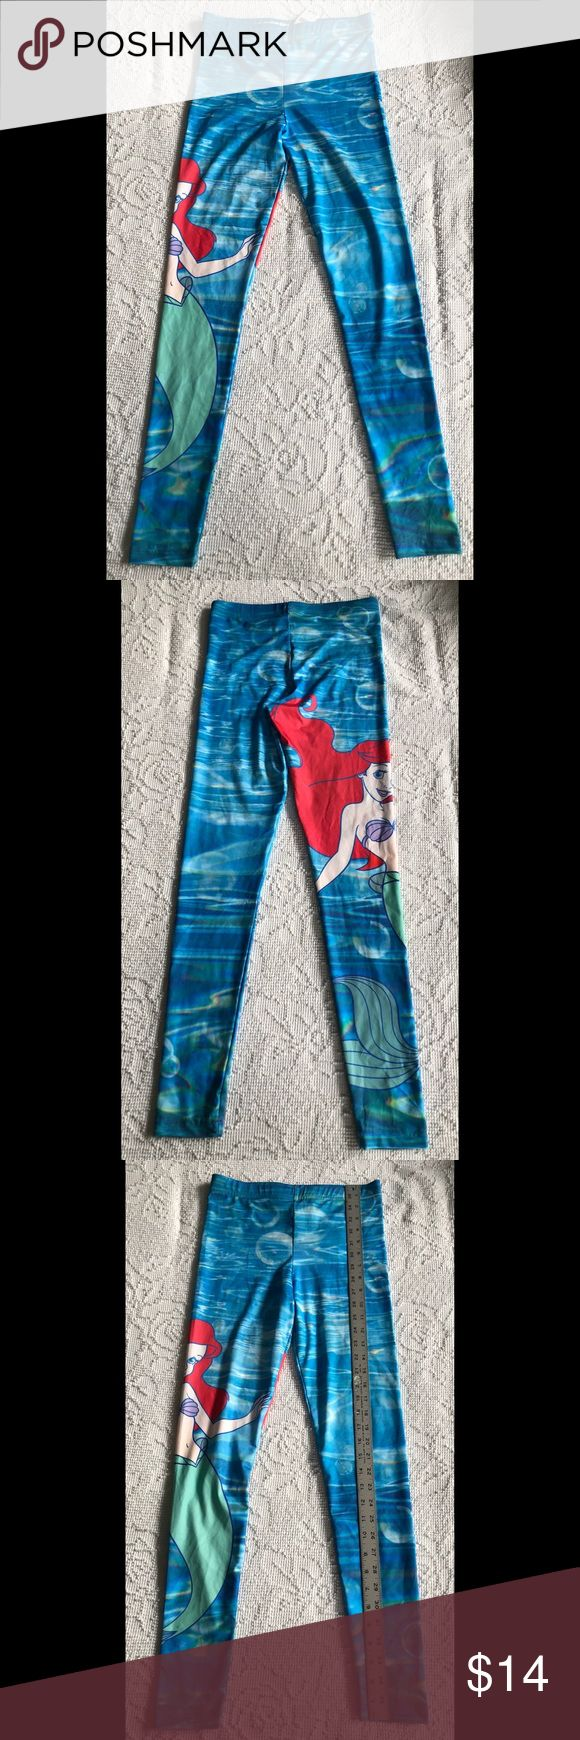 NWT Wet Seal Ariel The Little Mermaid Leggings S Adorable Disney Ariel The Little Mermaid leggings from Wet Seal. Size Small. New with tags, never washed or worn, from a smoke-free home. Wet Seal Pants Leggings